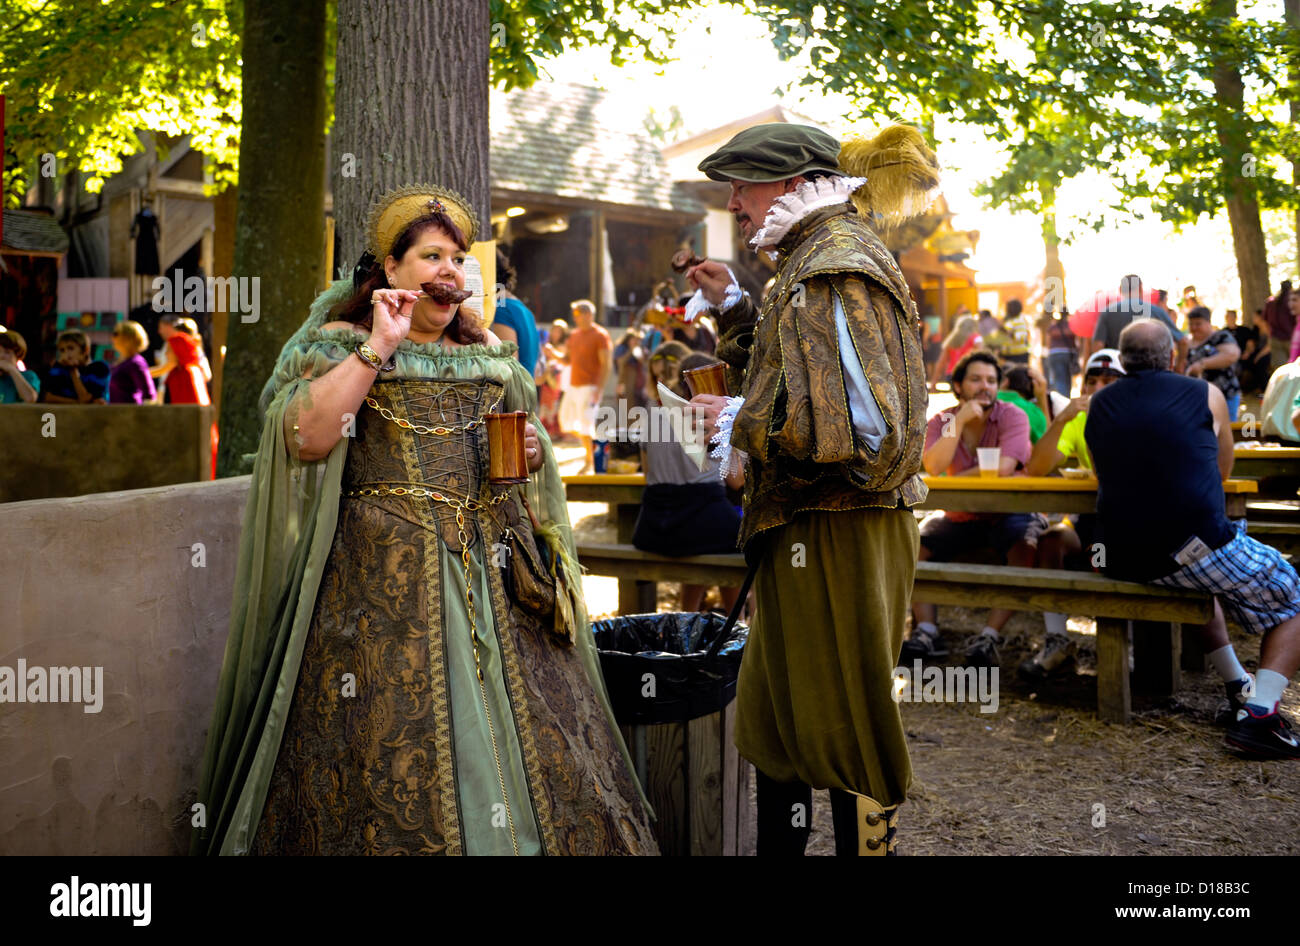 Costumed participants dressed as royalty eating,The Maryland Renaissance Festival 2012, Crownsville Road, Annapolis, - Stock Image